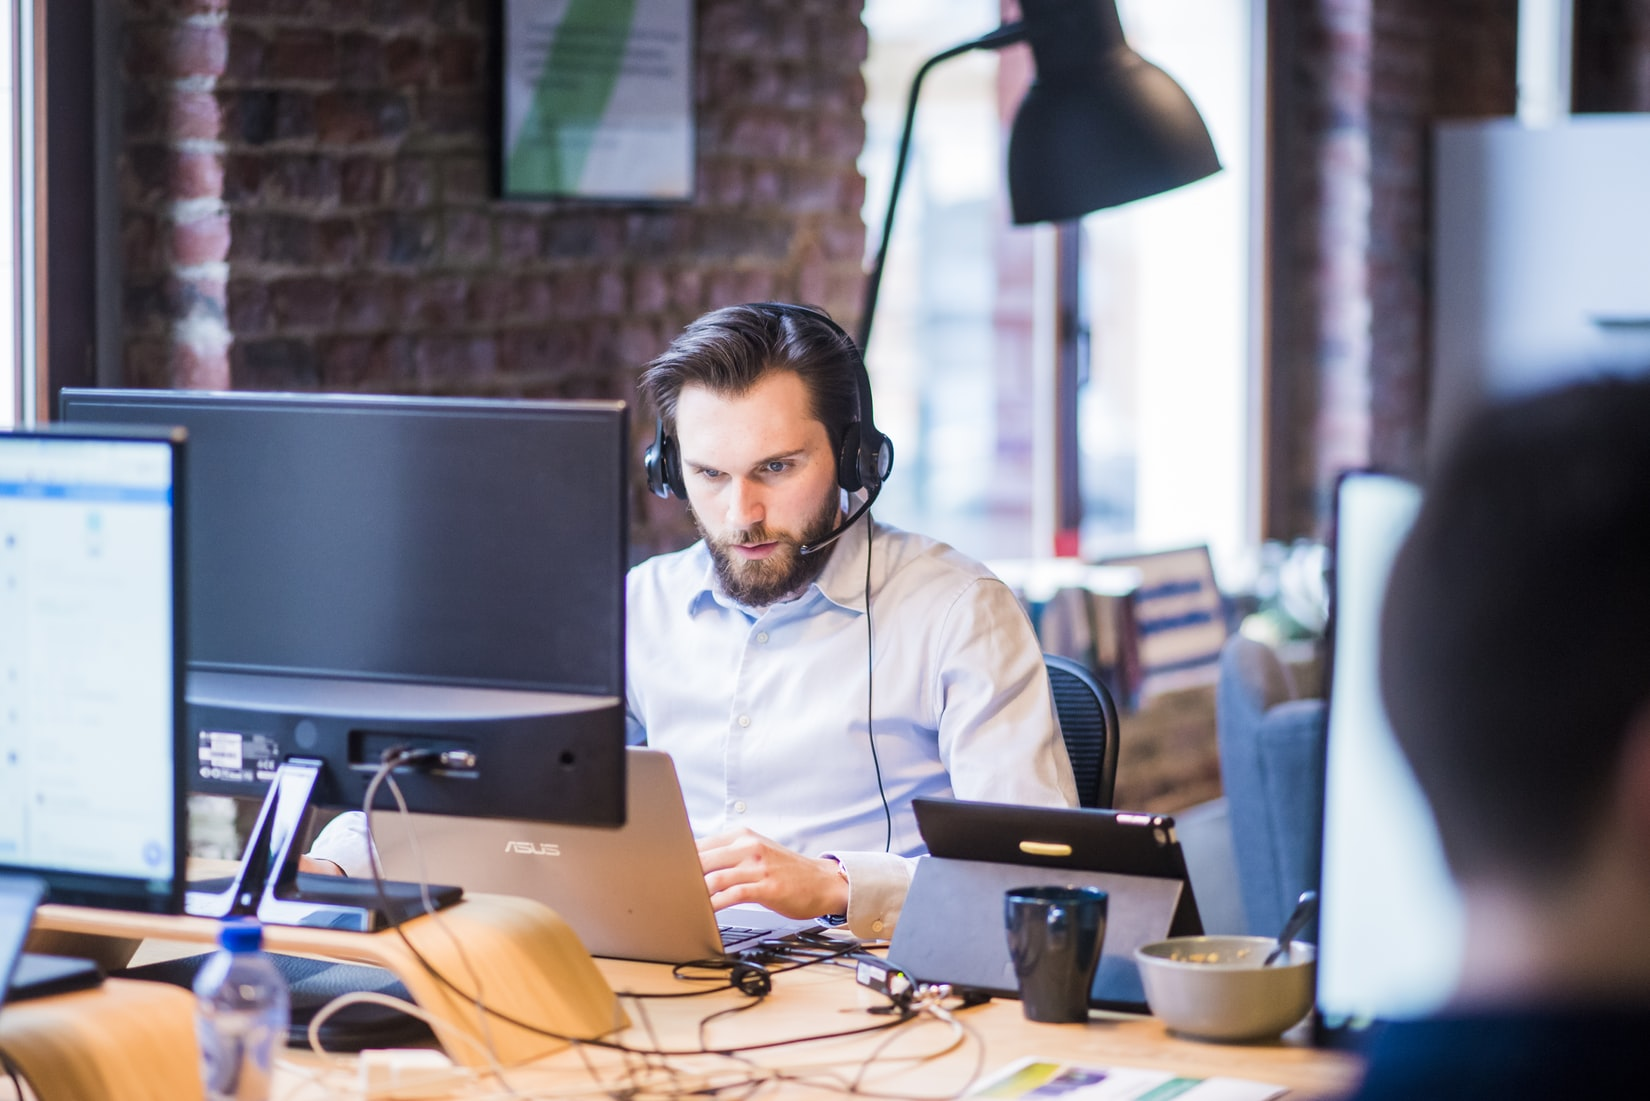 Is it possible to hire a remote service from a software consulting company?